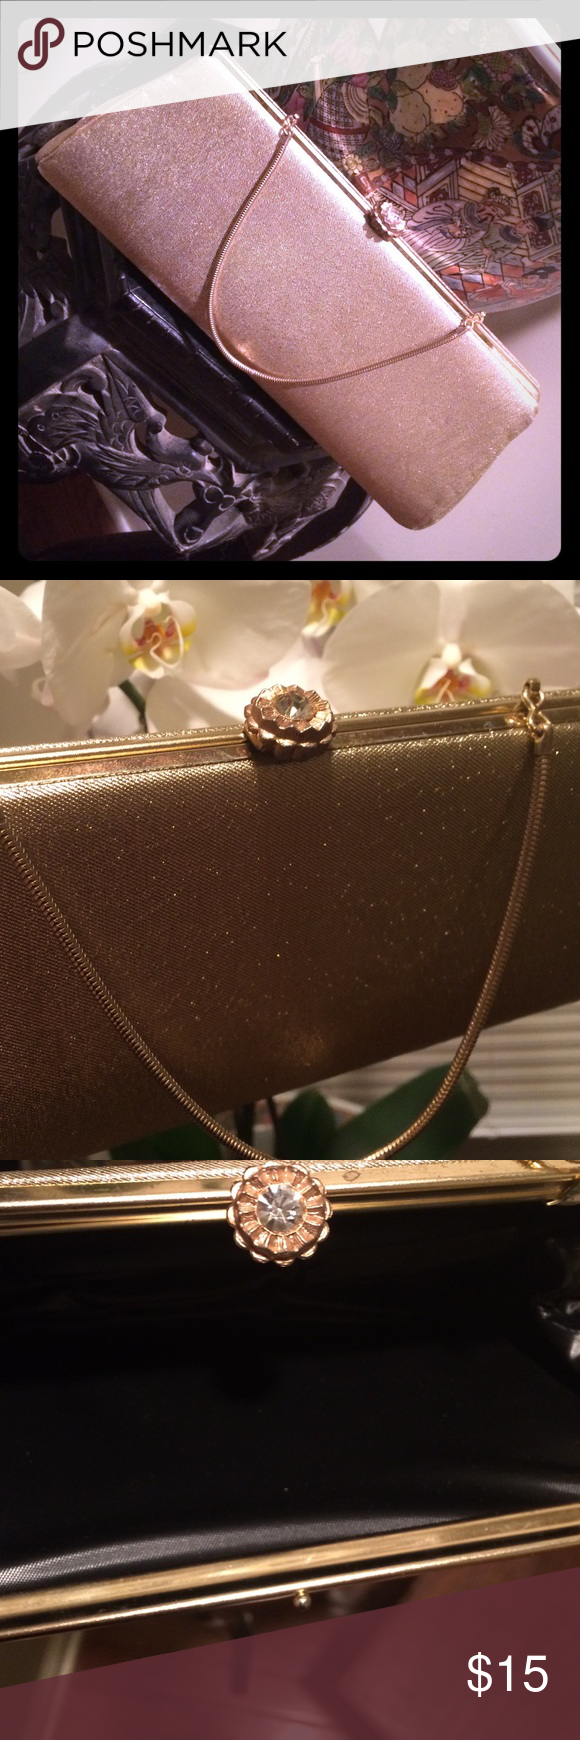 Gold Vintage Clutch with Crystal Clasp Gorgeous old Hollywood/Gatsby style vintage clutch.  Gold metallic fabric exterior accented with crystal encrusted clasp. Gold-tone metal chain offers flexibility to carry by the strap or as a clutch.  Interior features a wipe-clean black fabric. This vintage bag is in great shape. No cracks, tears, or stains on interior or exterior fabric. There are a few indentations on the exterior and minor scratches on the metal frame,but they are not visible in…